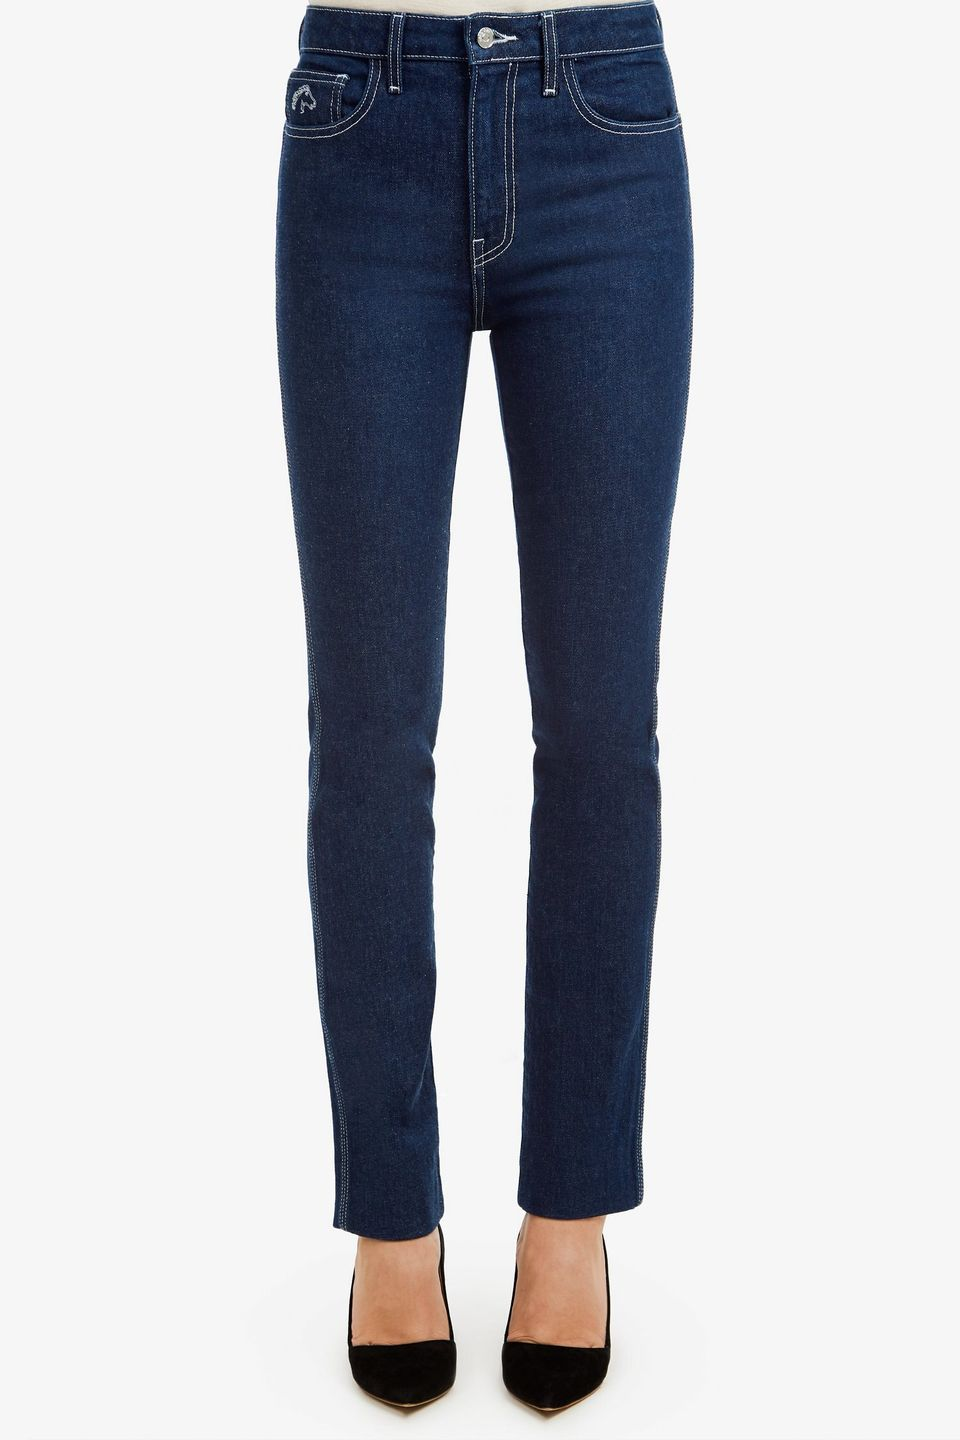 "Get the <a href=""https://www.jordache.com/collections/premium-jeans/products/rinse-high-rise-slim"" target=""_blank"">Jordache r"